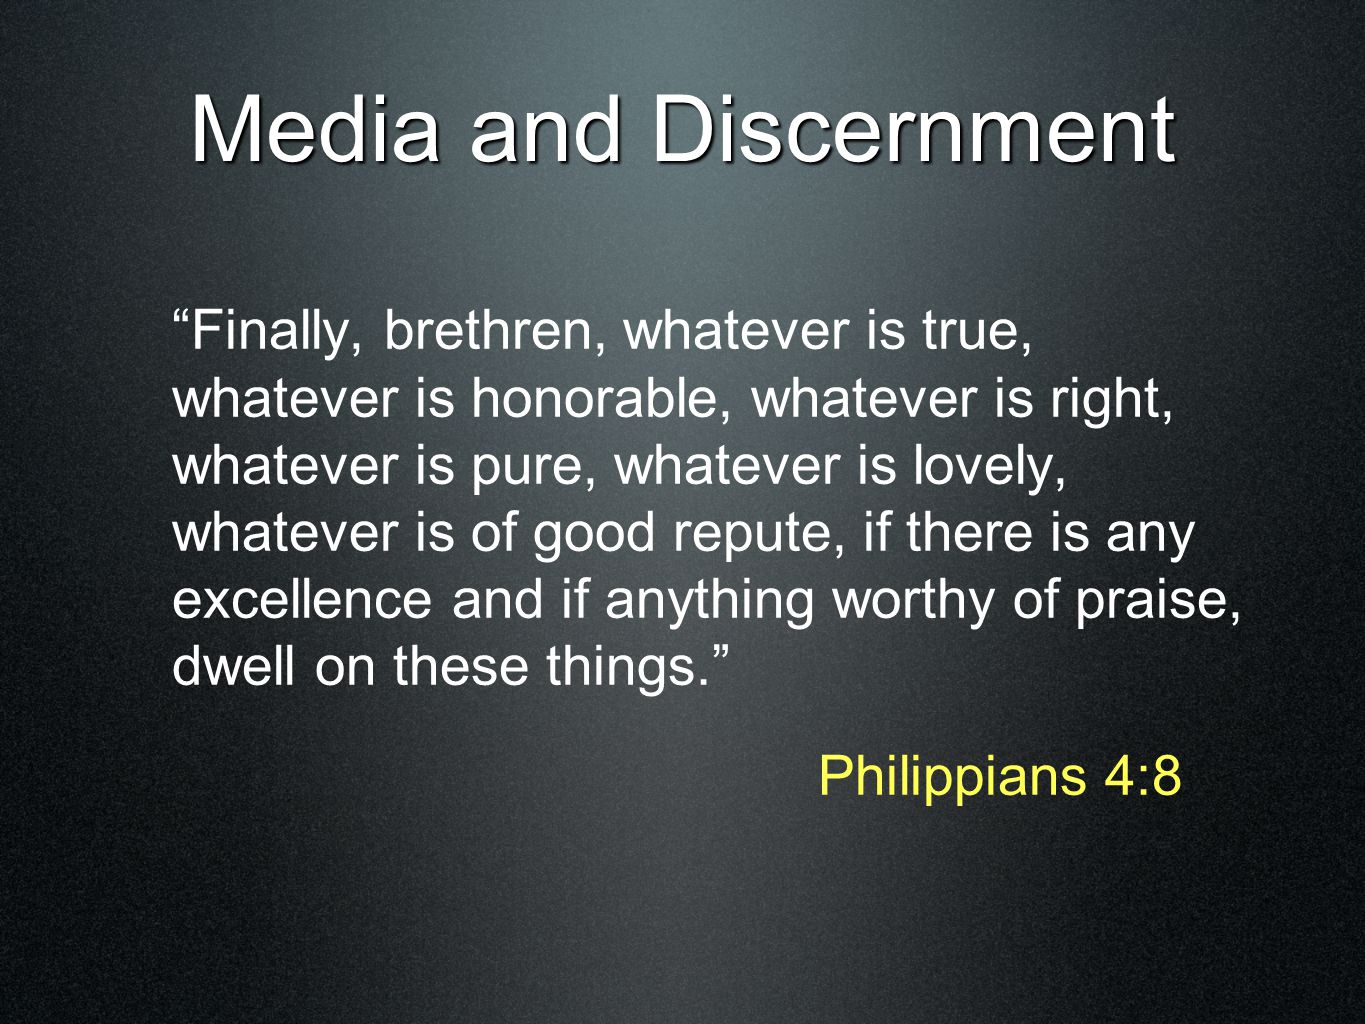 Media and Discernment Finally, brethren, whatever is true, whatever is honorable, whatever is right, whatever is pure, whatever is lovely, whatever is of good repute, if there is any excellence and if anything worthy of praise, dwell on these things. Philippians 4:8